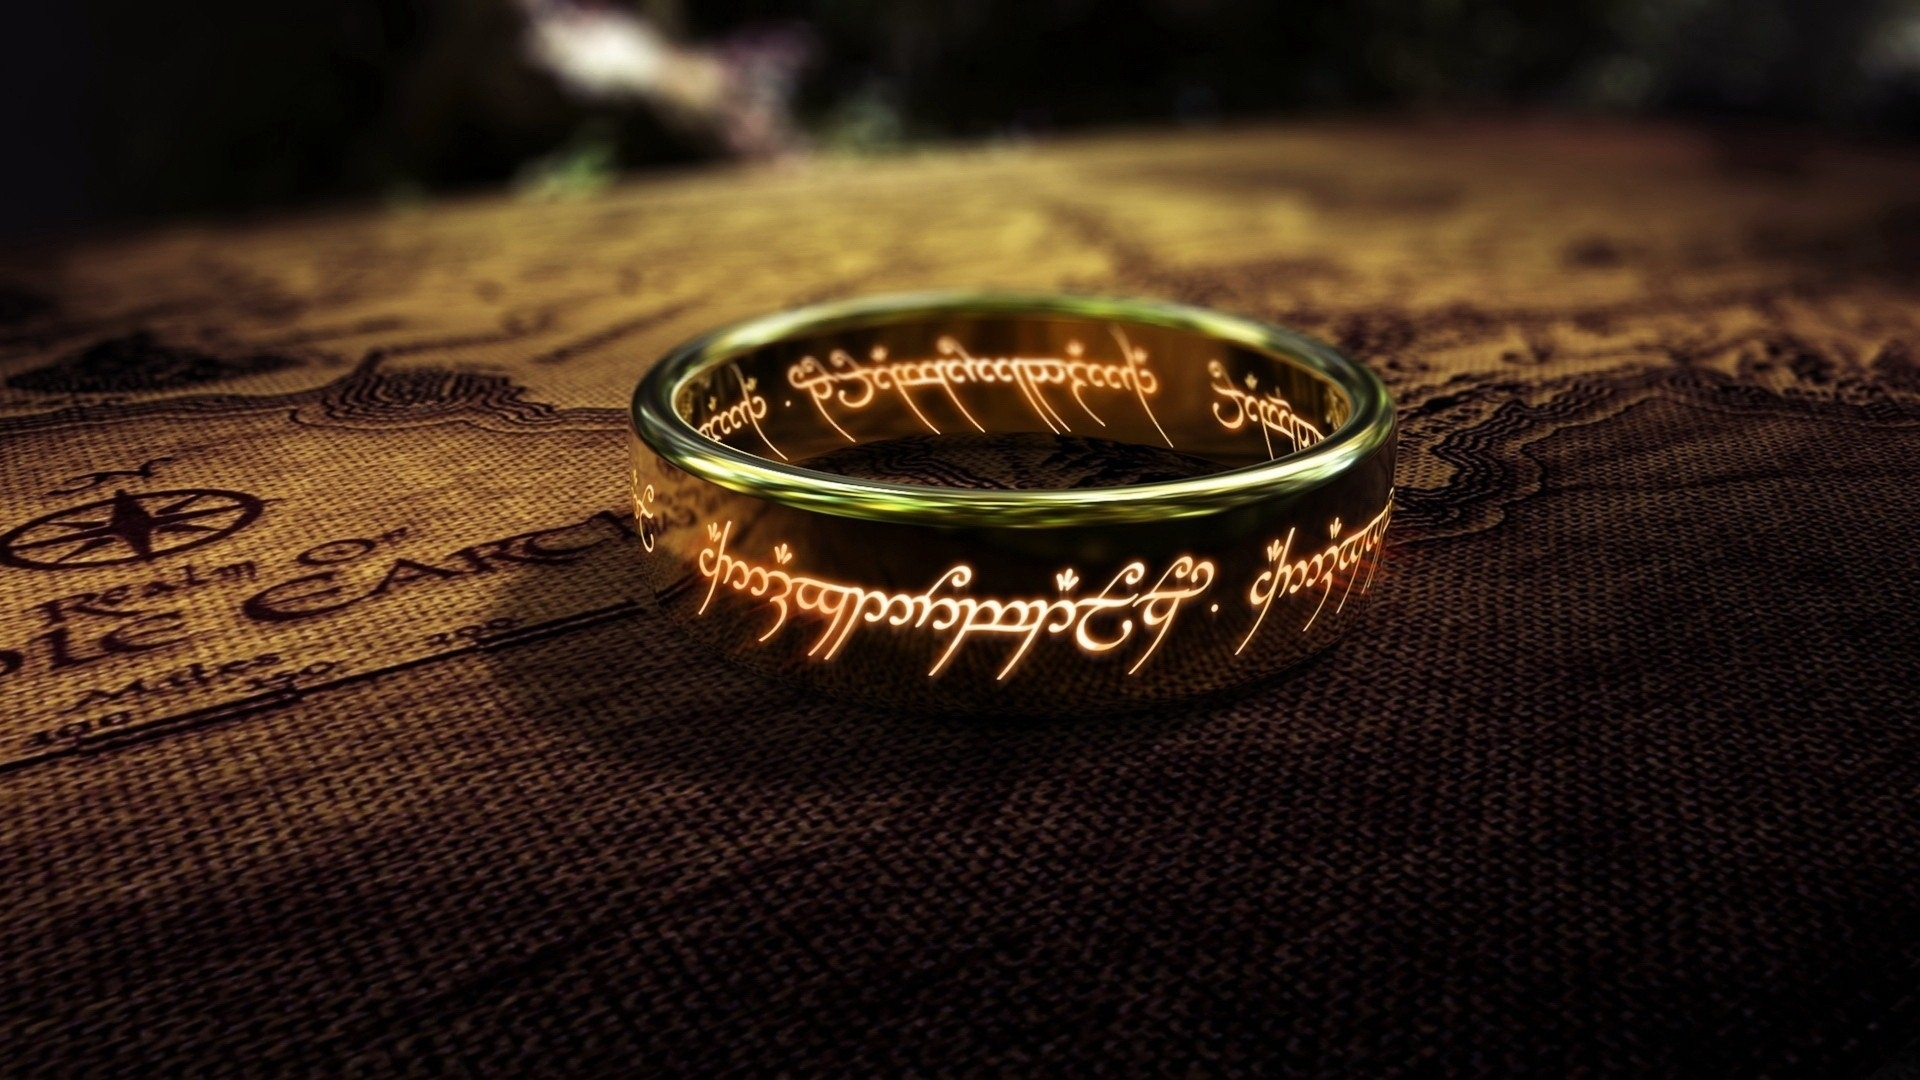 lord of the rings wallpapers, jk53 high quality wallpapers for